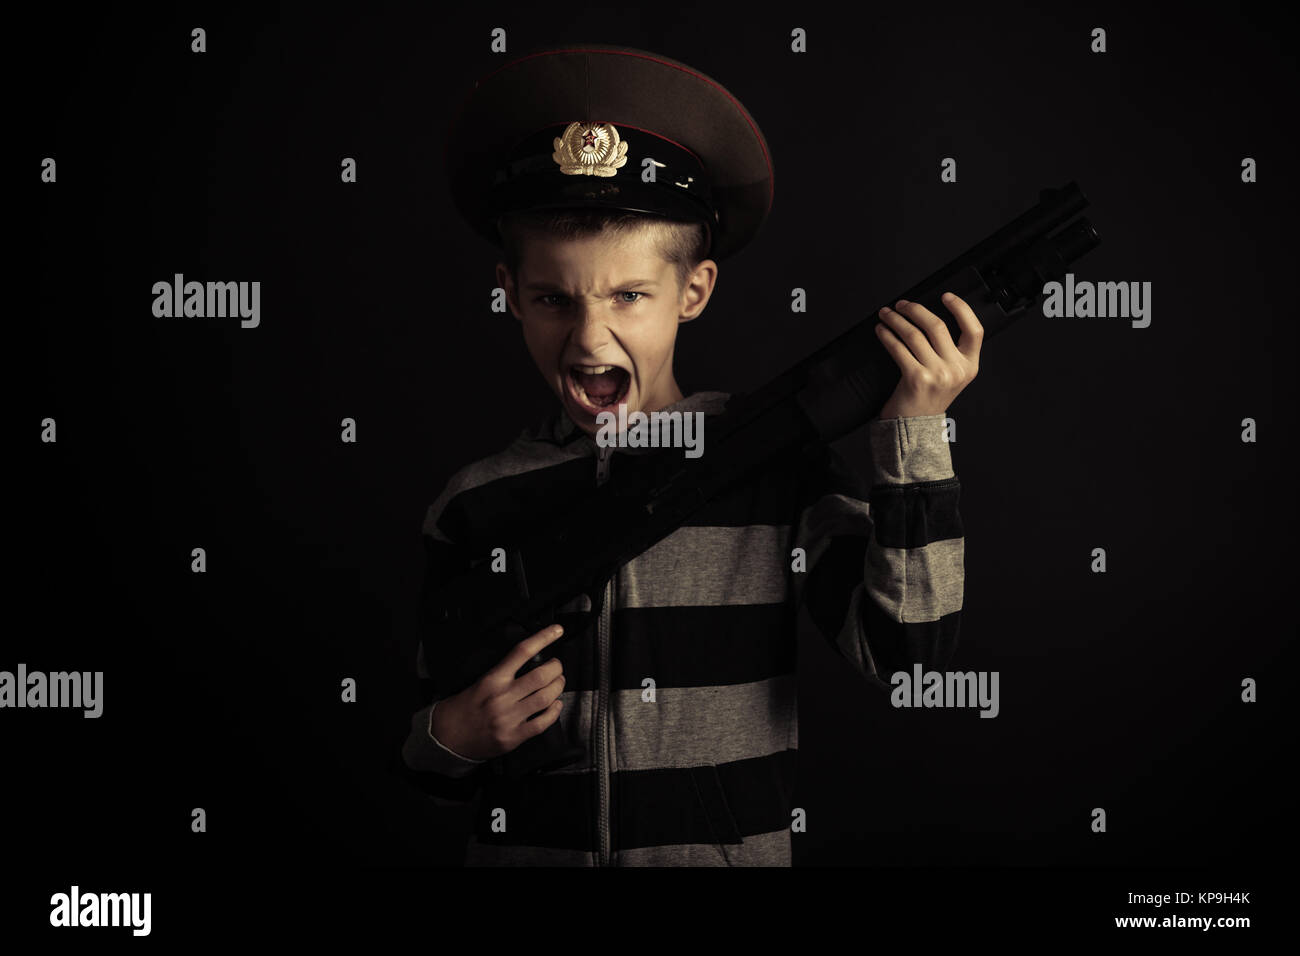 Screaming Boy with Police Hat Holding Rifle - Stock Image